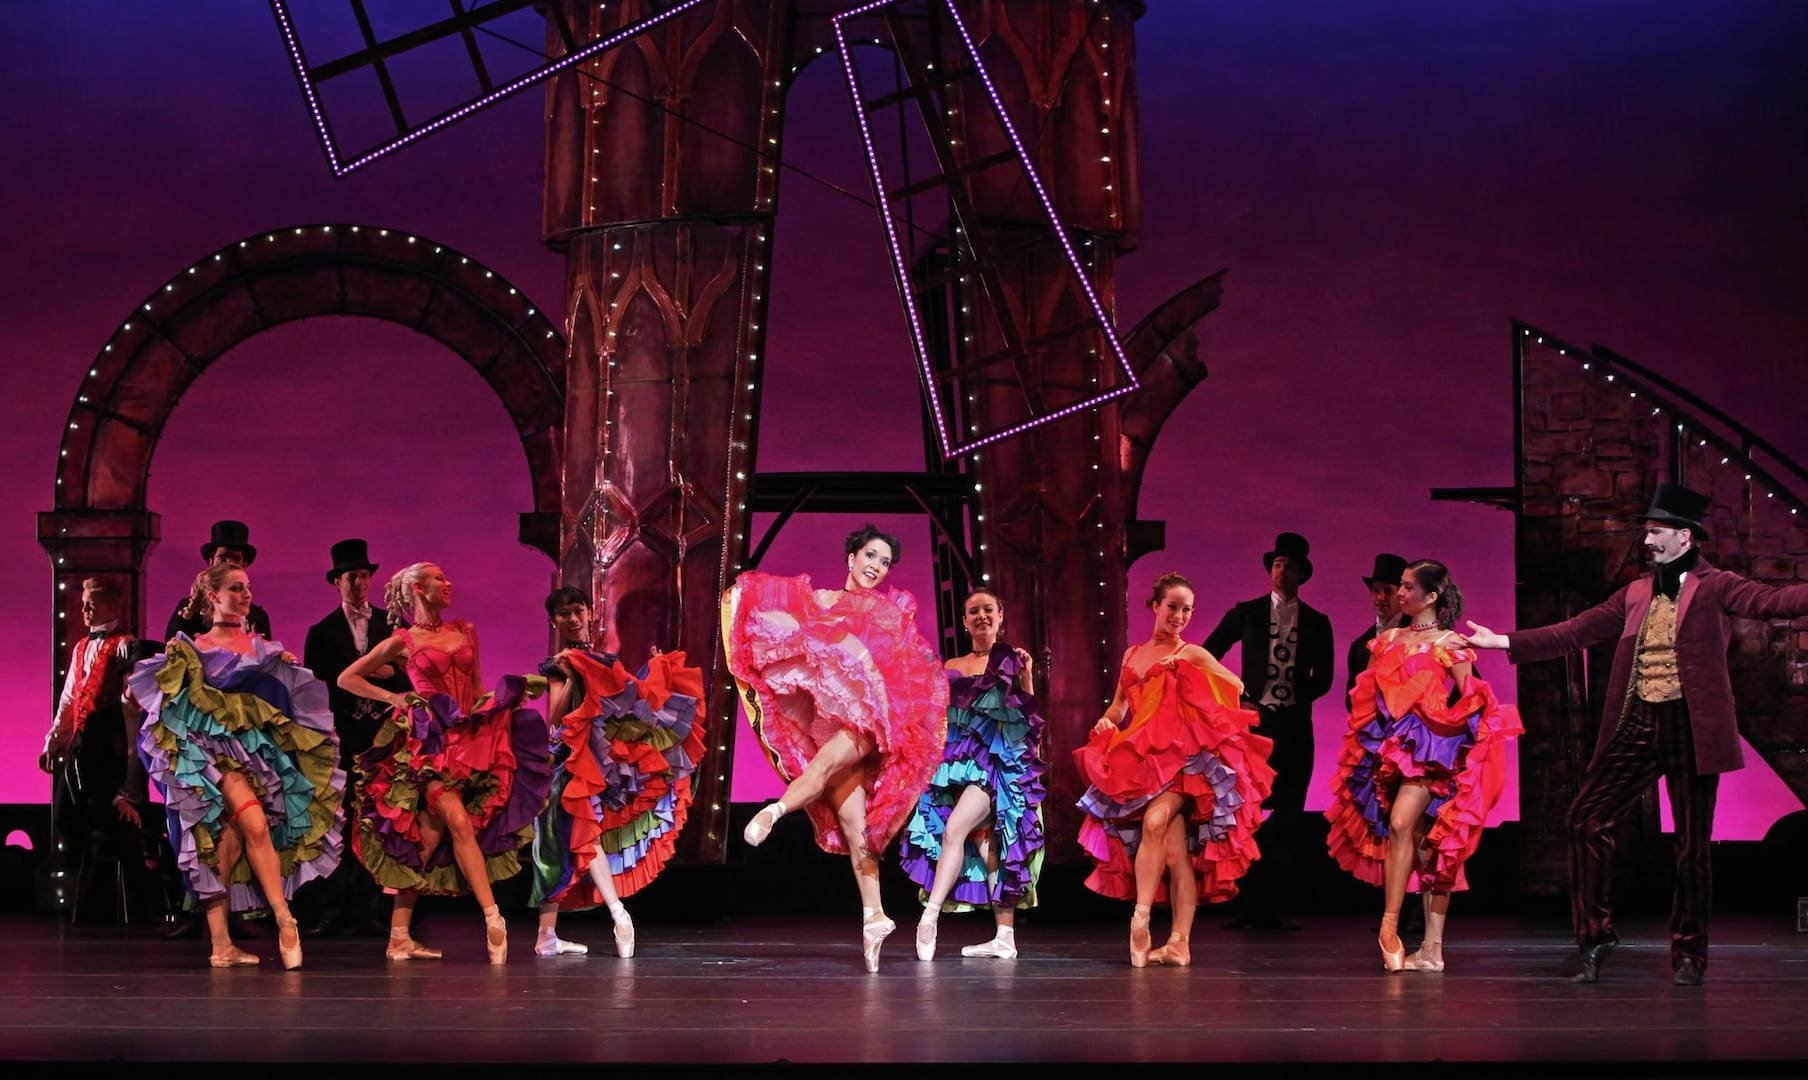 The production includes vibrant period costumes. (Photo by Charlie McCullers)